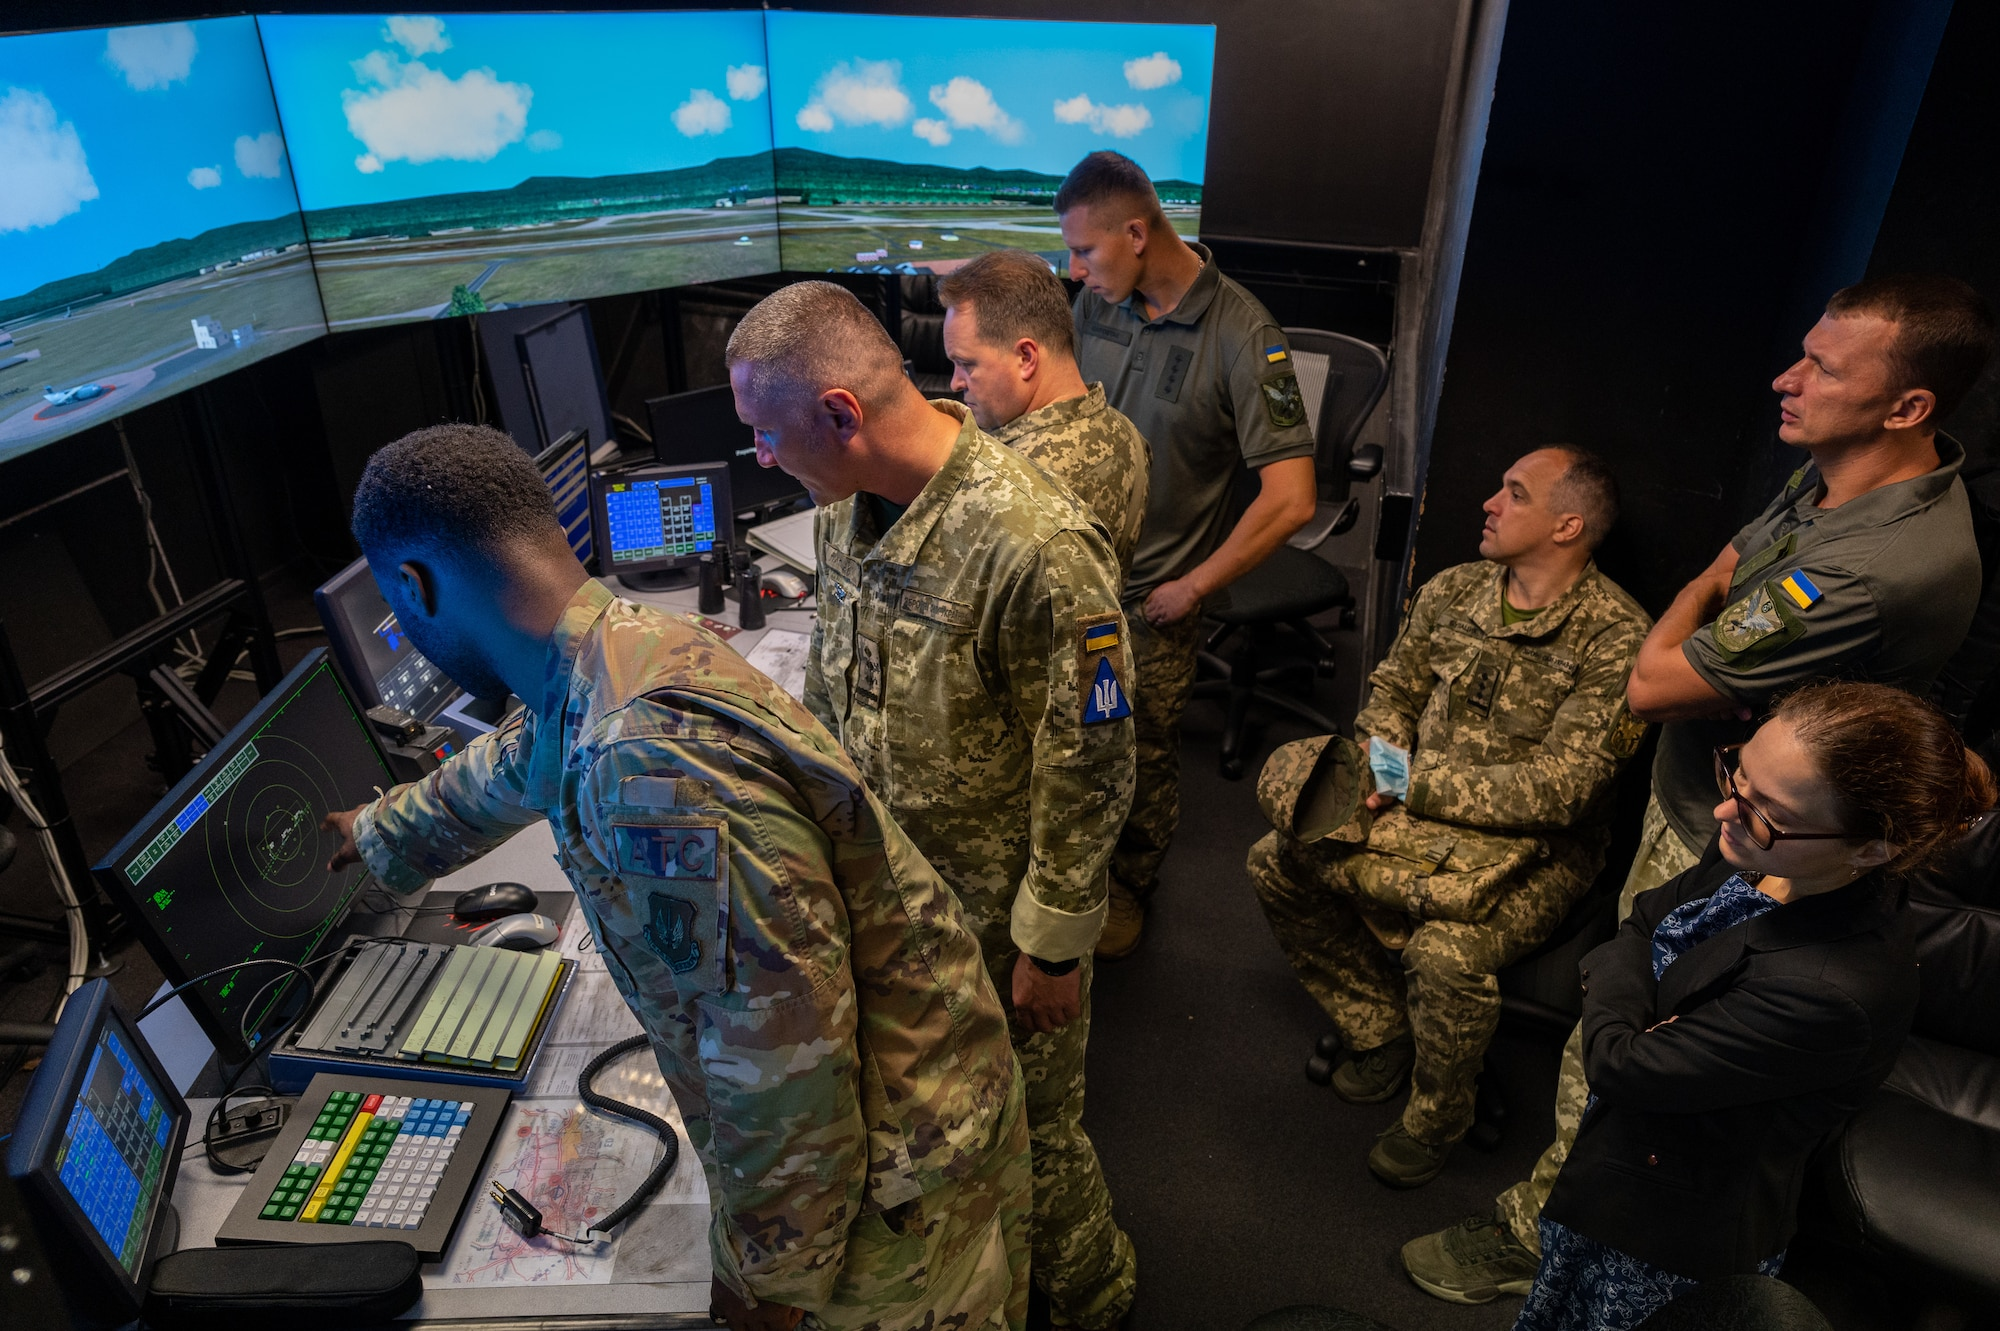 Service members standing next to control panels and monitors.